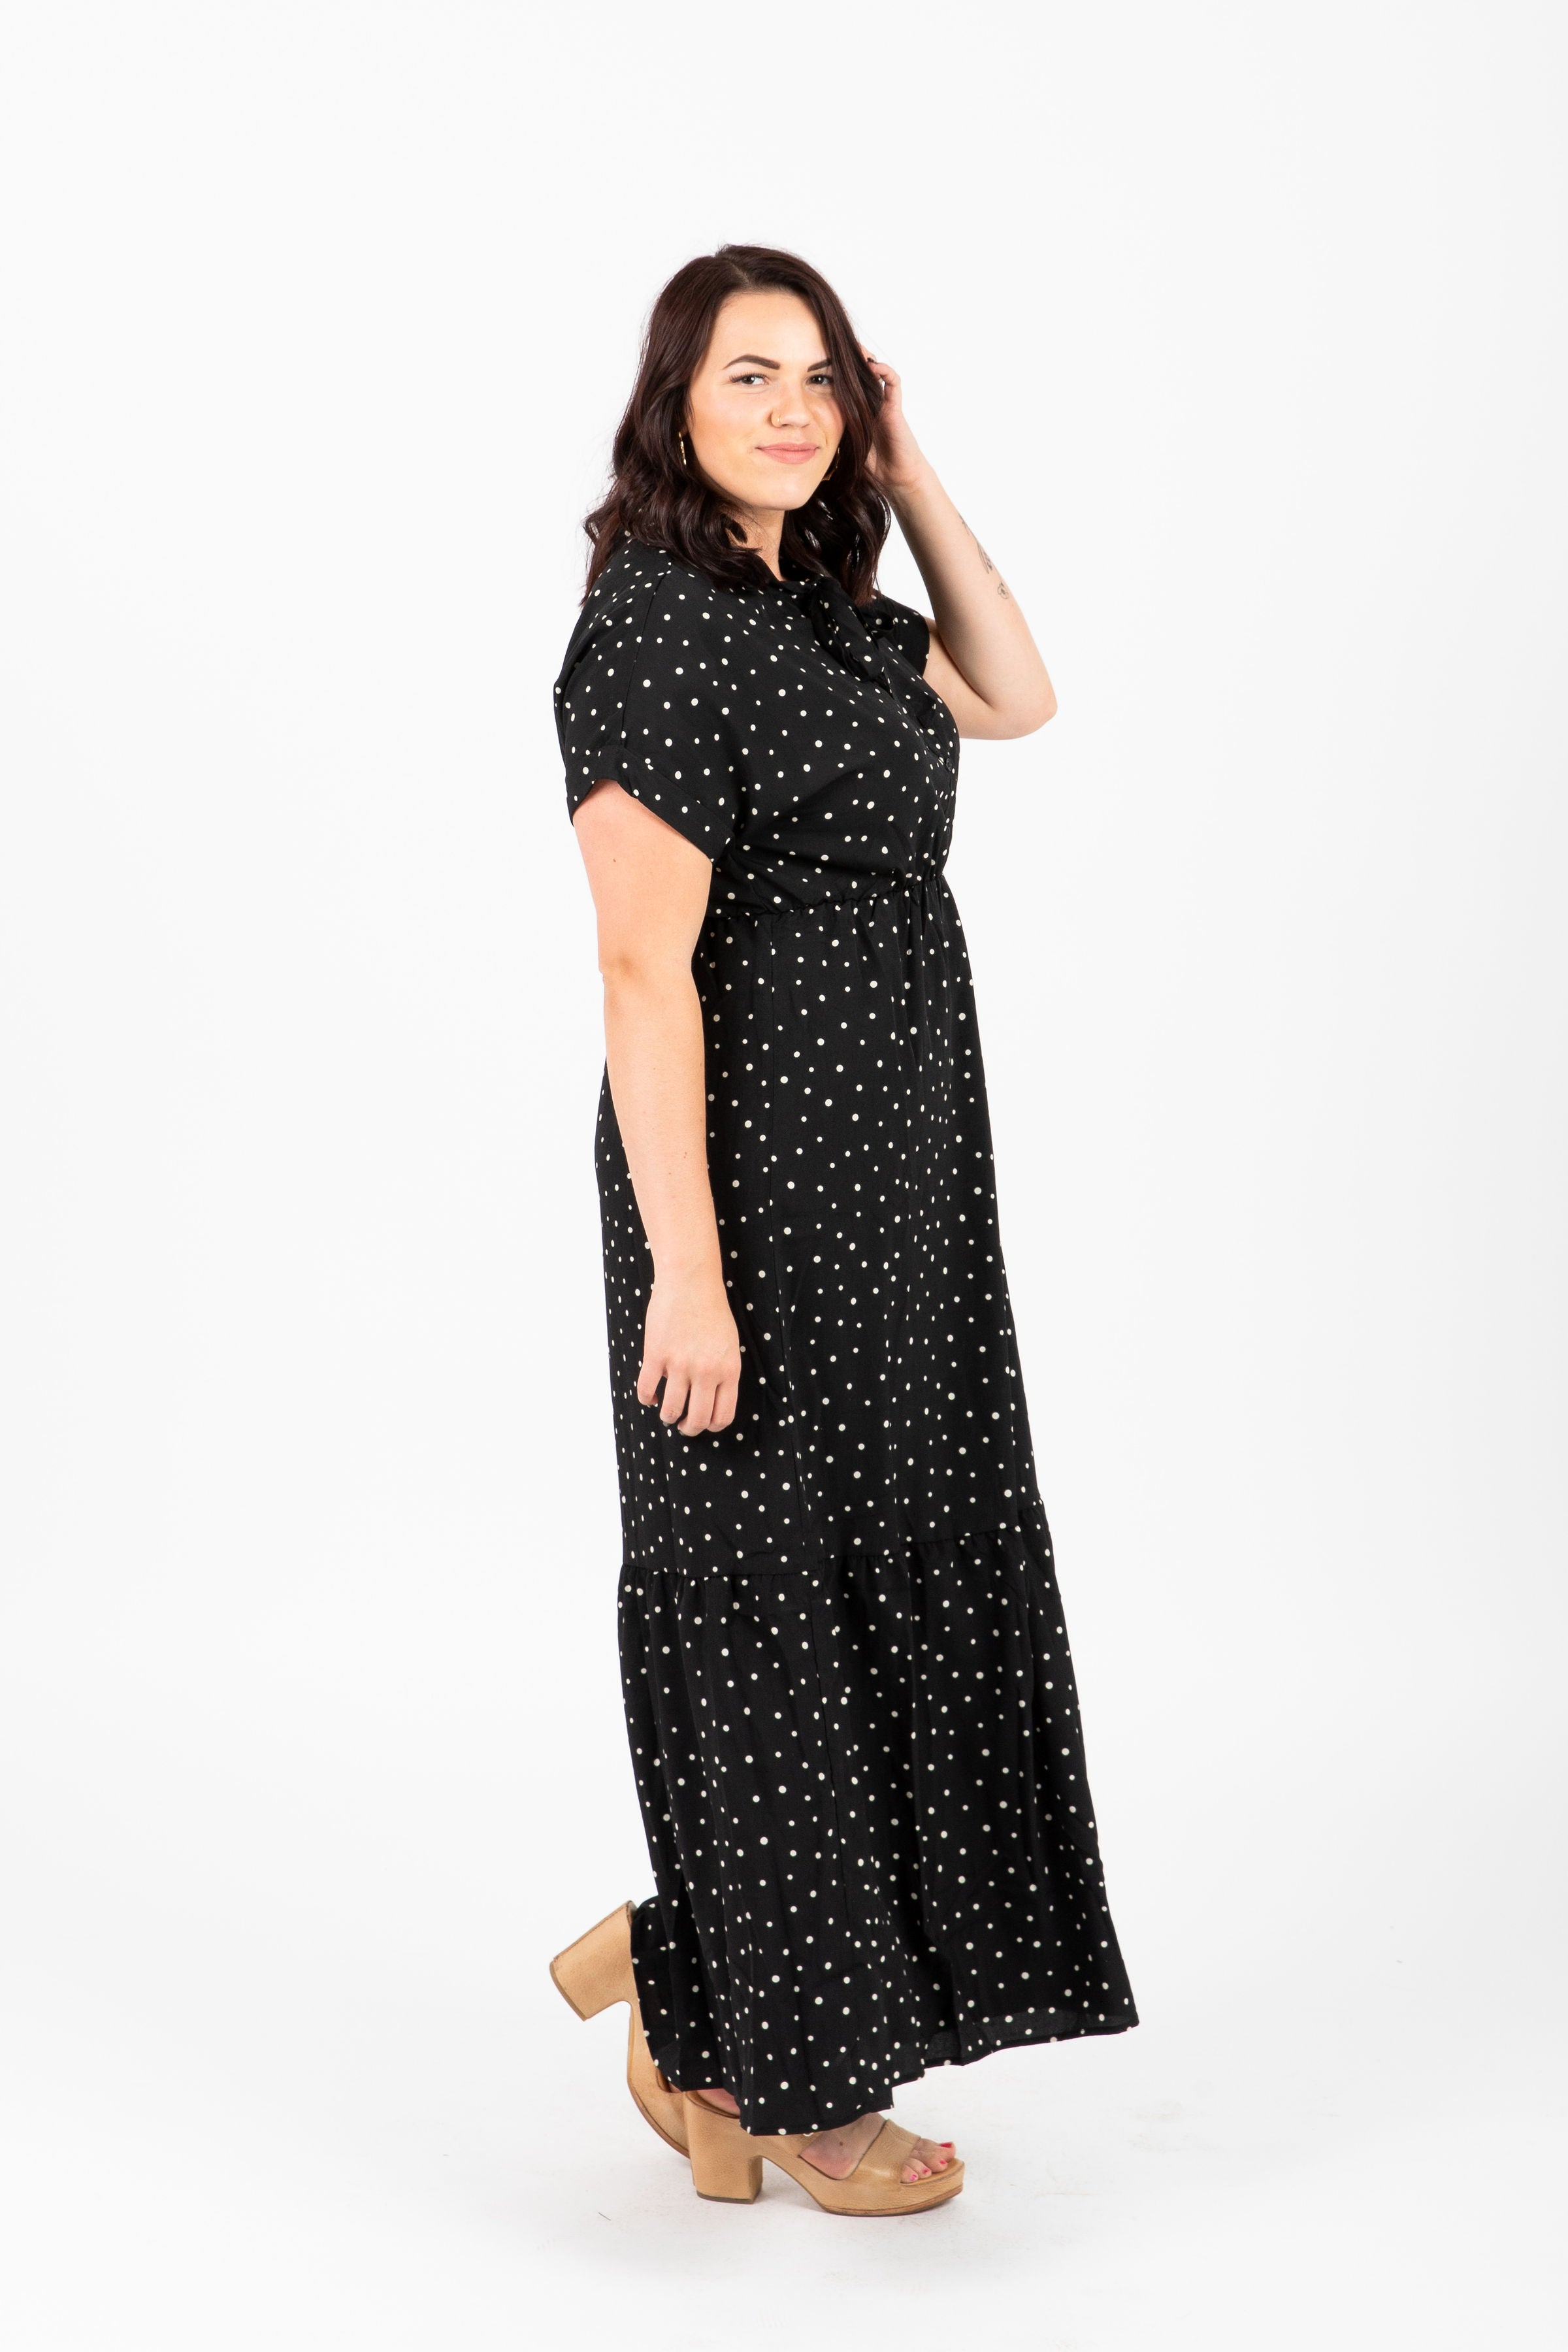 Piper & Scoot: The Lady Dot Tiered Dress in Black